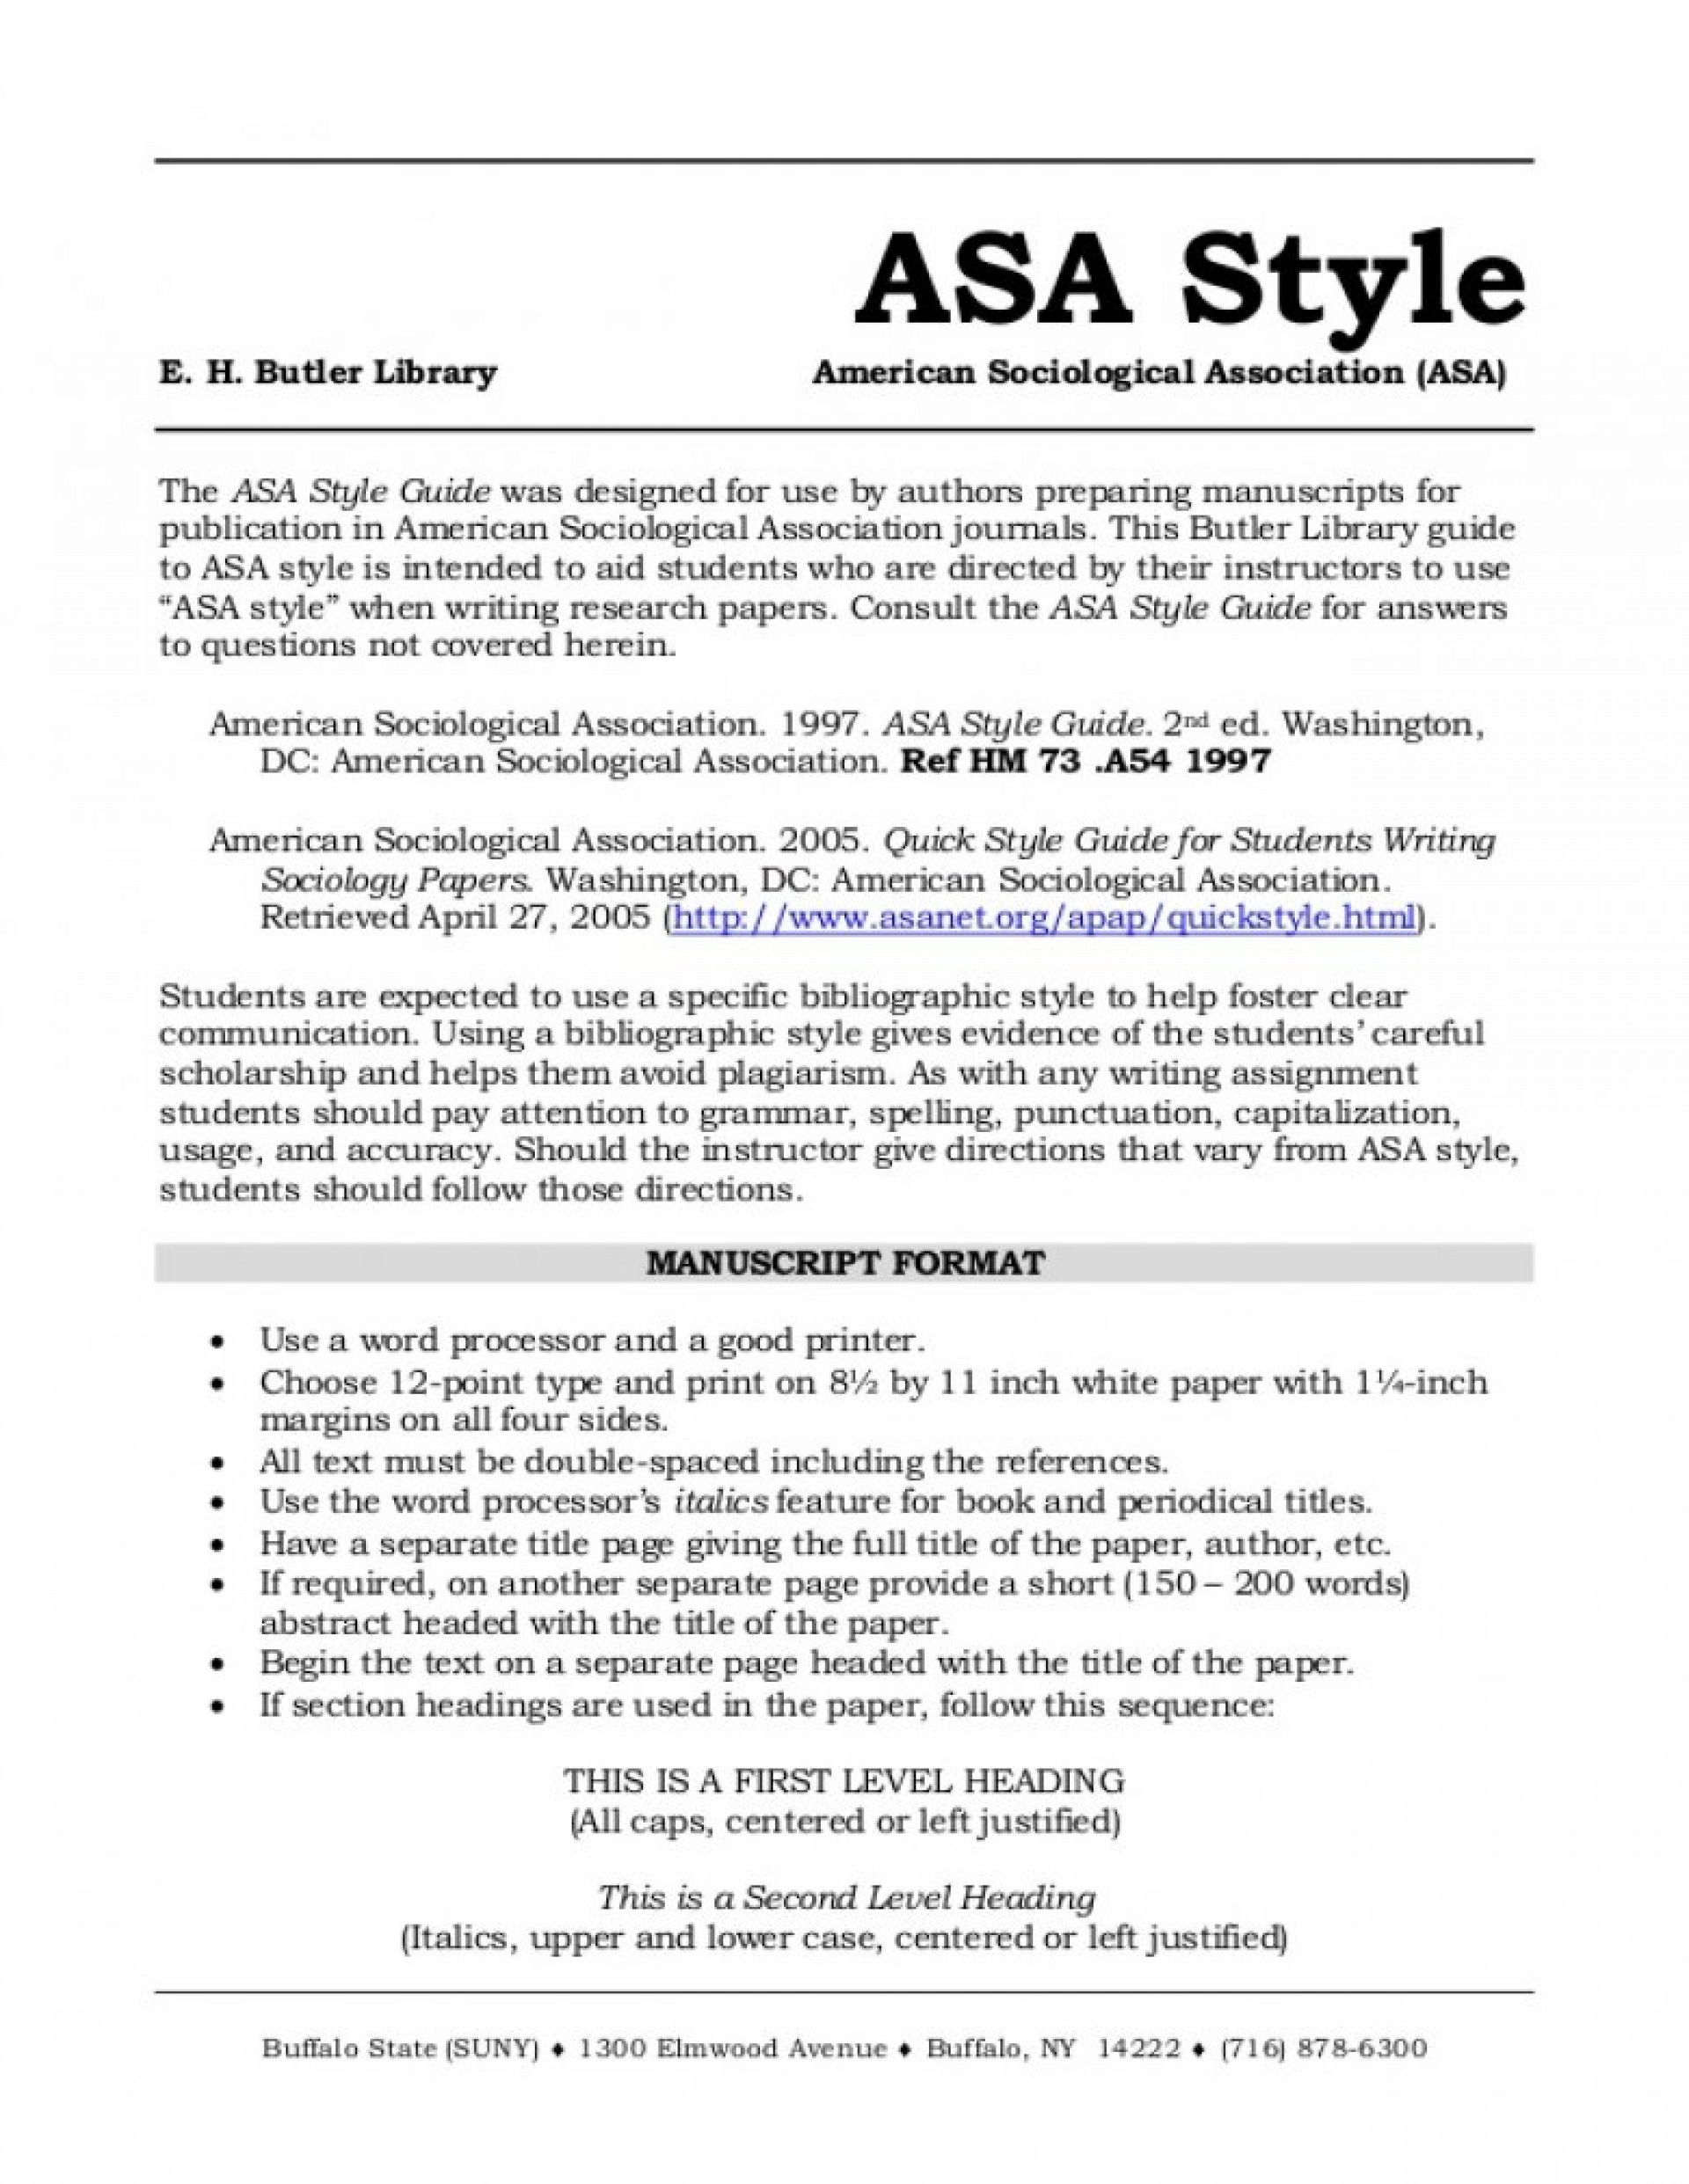 023 Asa Format Papers Essay Remarkable Reference Generator Heading Citation 1920